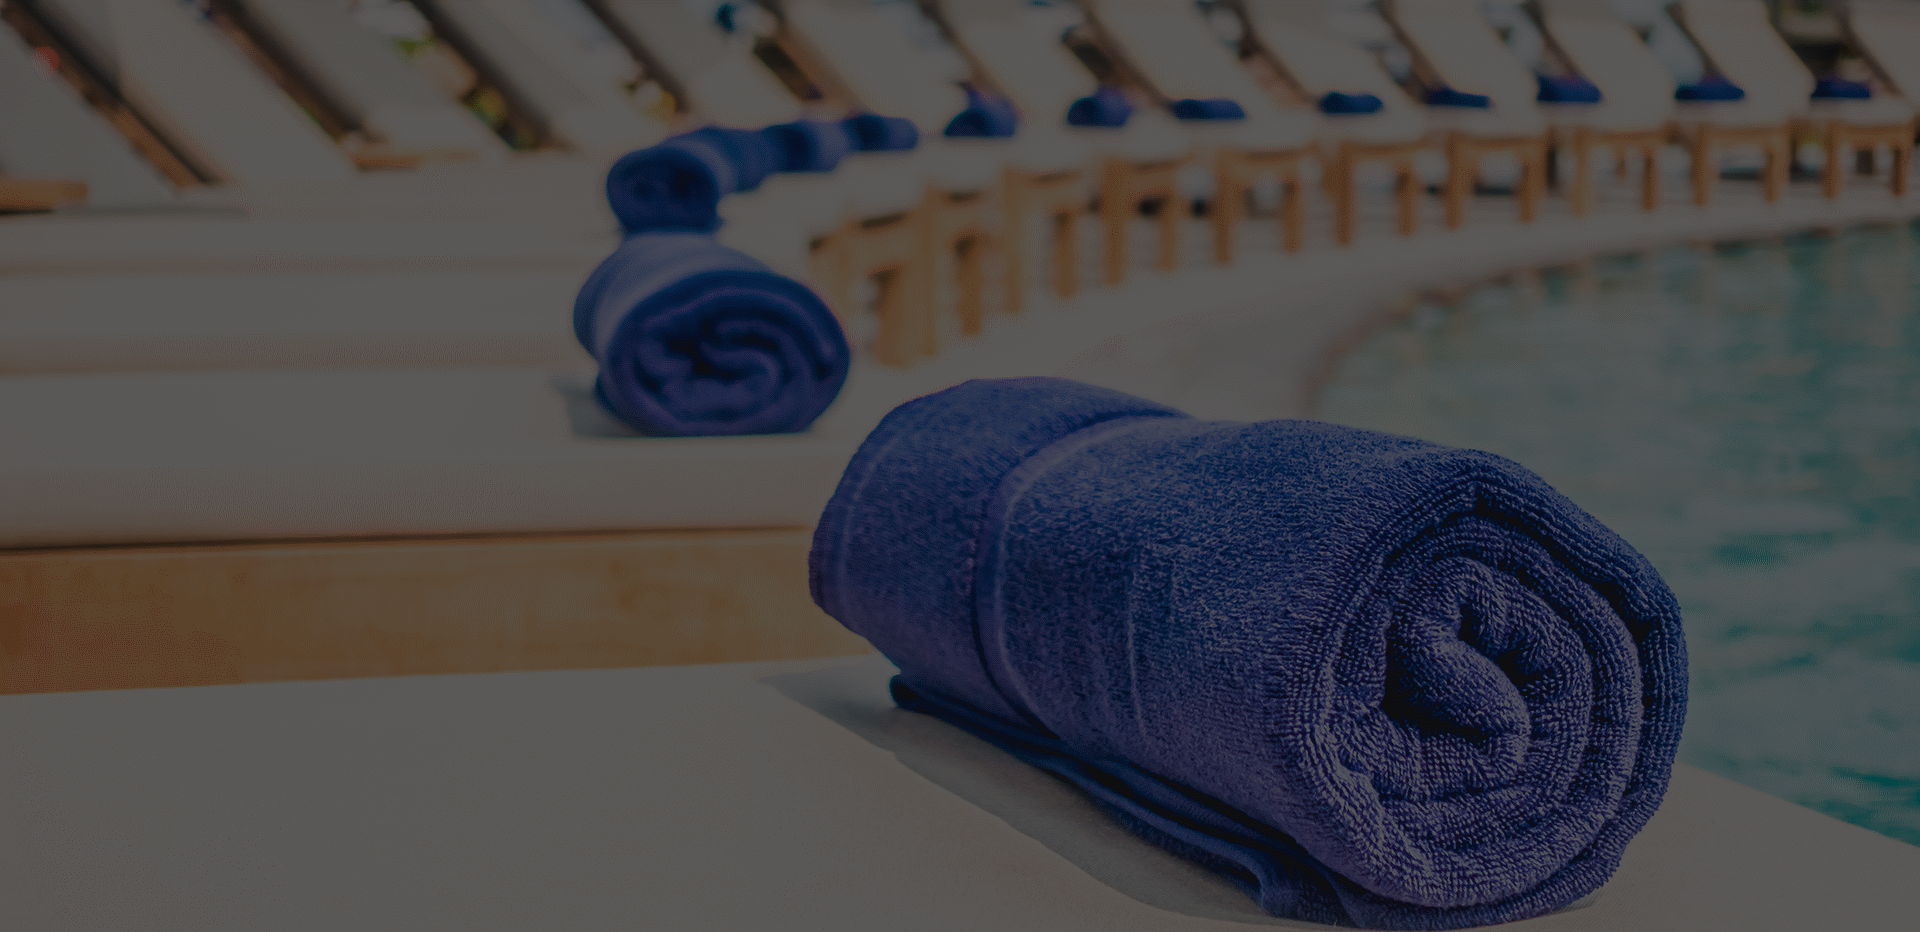 havlumat towel tracking and monitoring system for hotels and sport centers